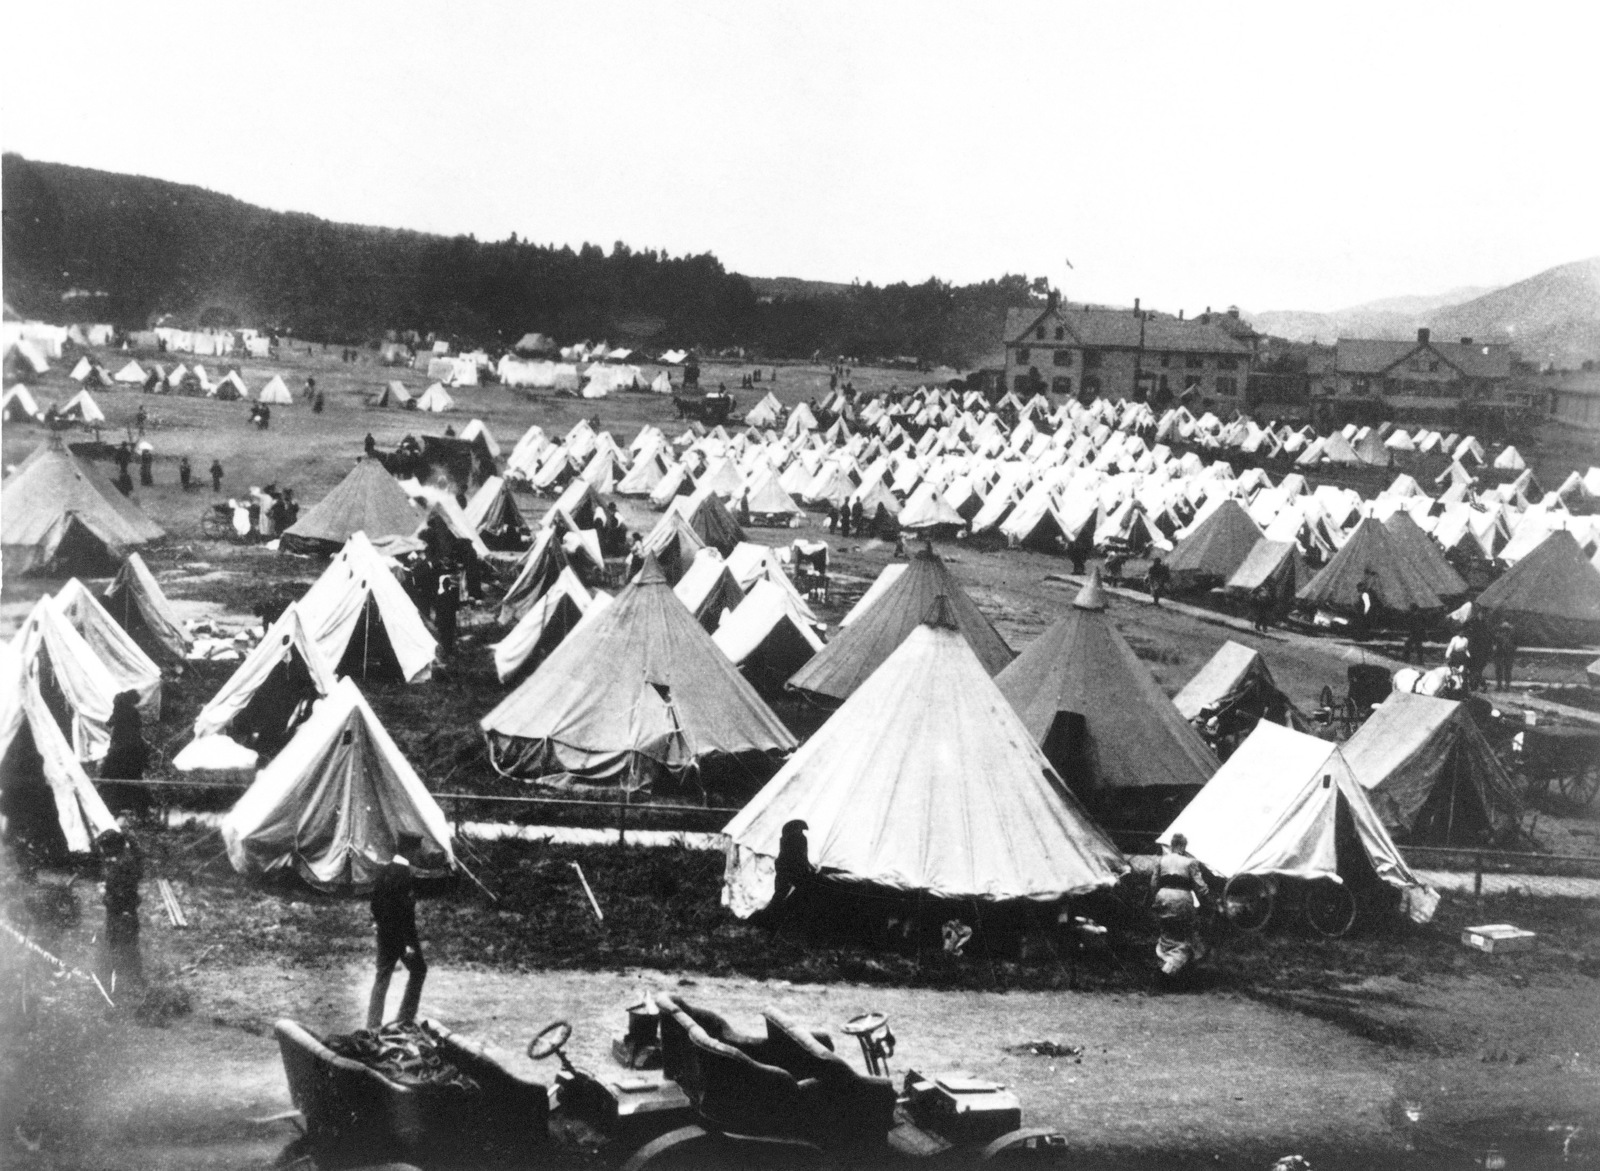 Like nomads settling in for a stay this is the largest tent refugee camp on the Presidio Reservation. United States Army General Hospital is in the background. On April 18, 1906 at 5:15 AM a quake of 8.25 on the Richter scale hit San Francisco. Greater destruction came from the fires afterwards. The city burned for three days. The combination destroyed 490 city blocks and 25,000 buildings, leaving 250,000 homeless and killing between 450 and 700. Estimated damages, over $350 million